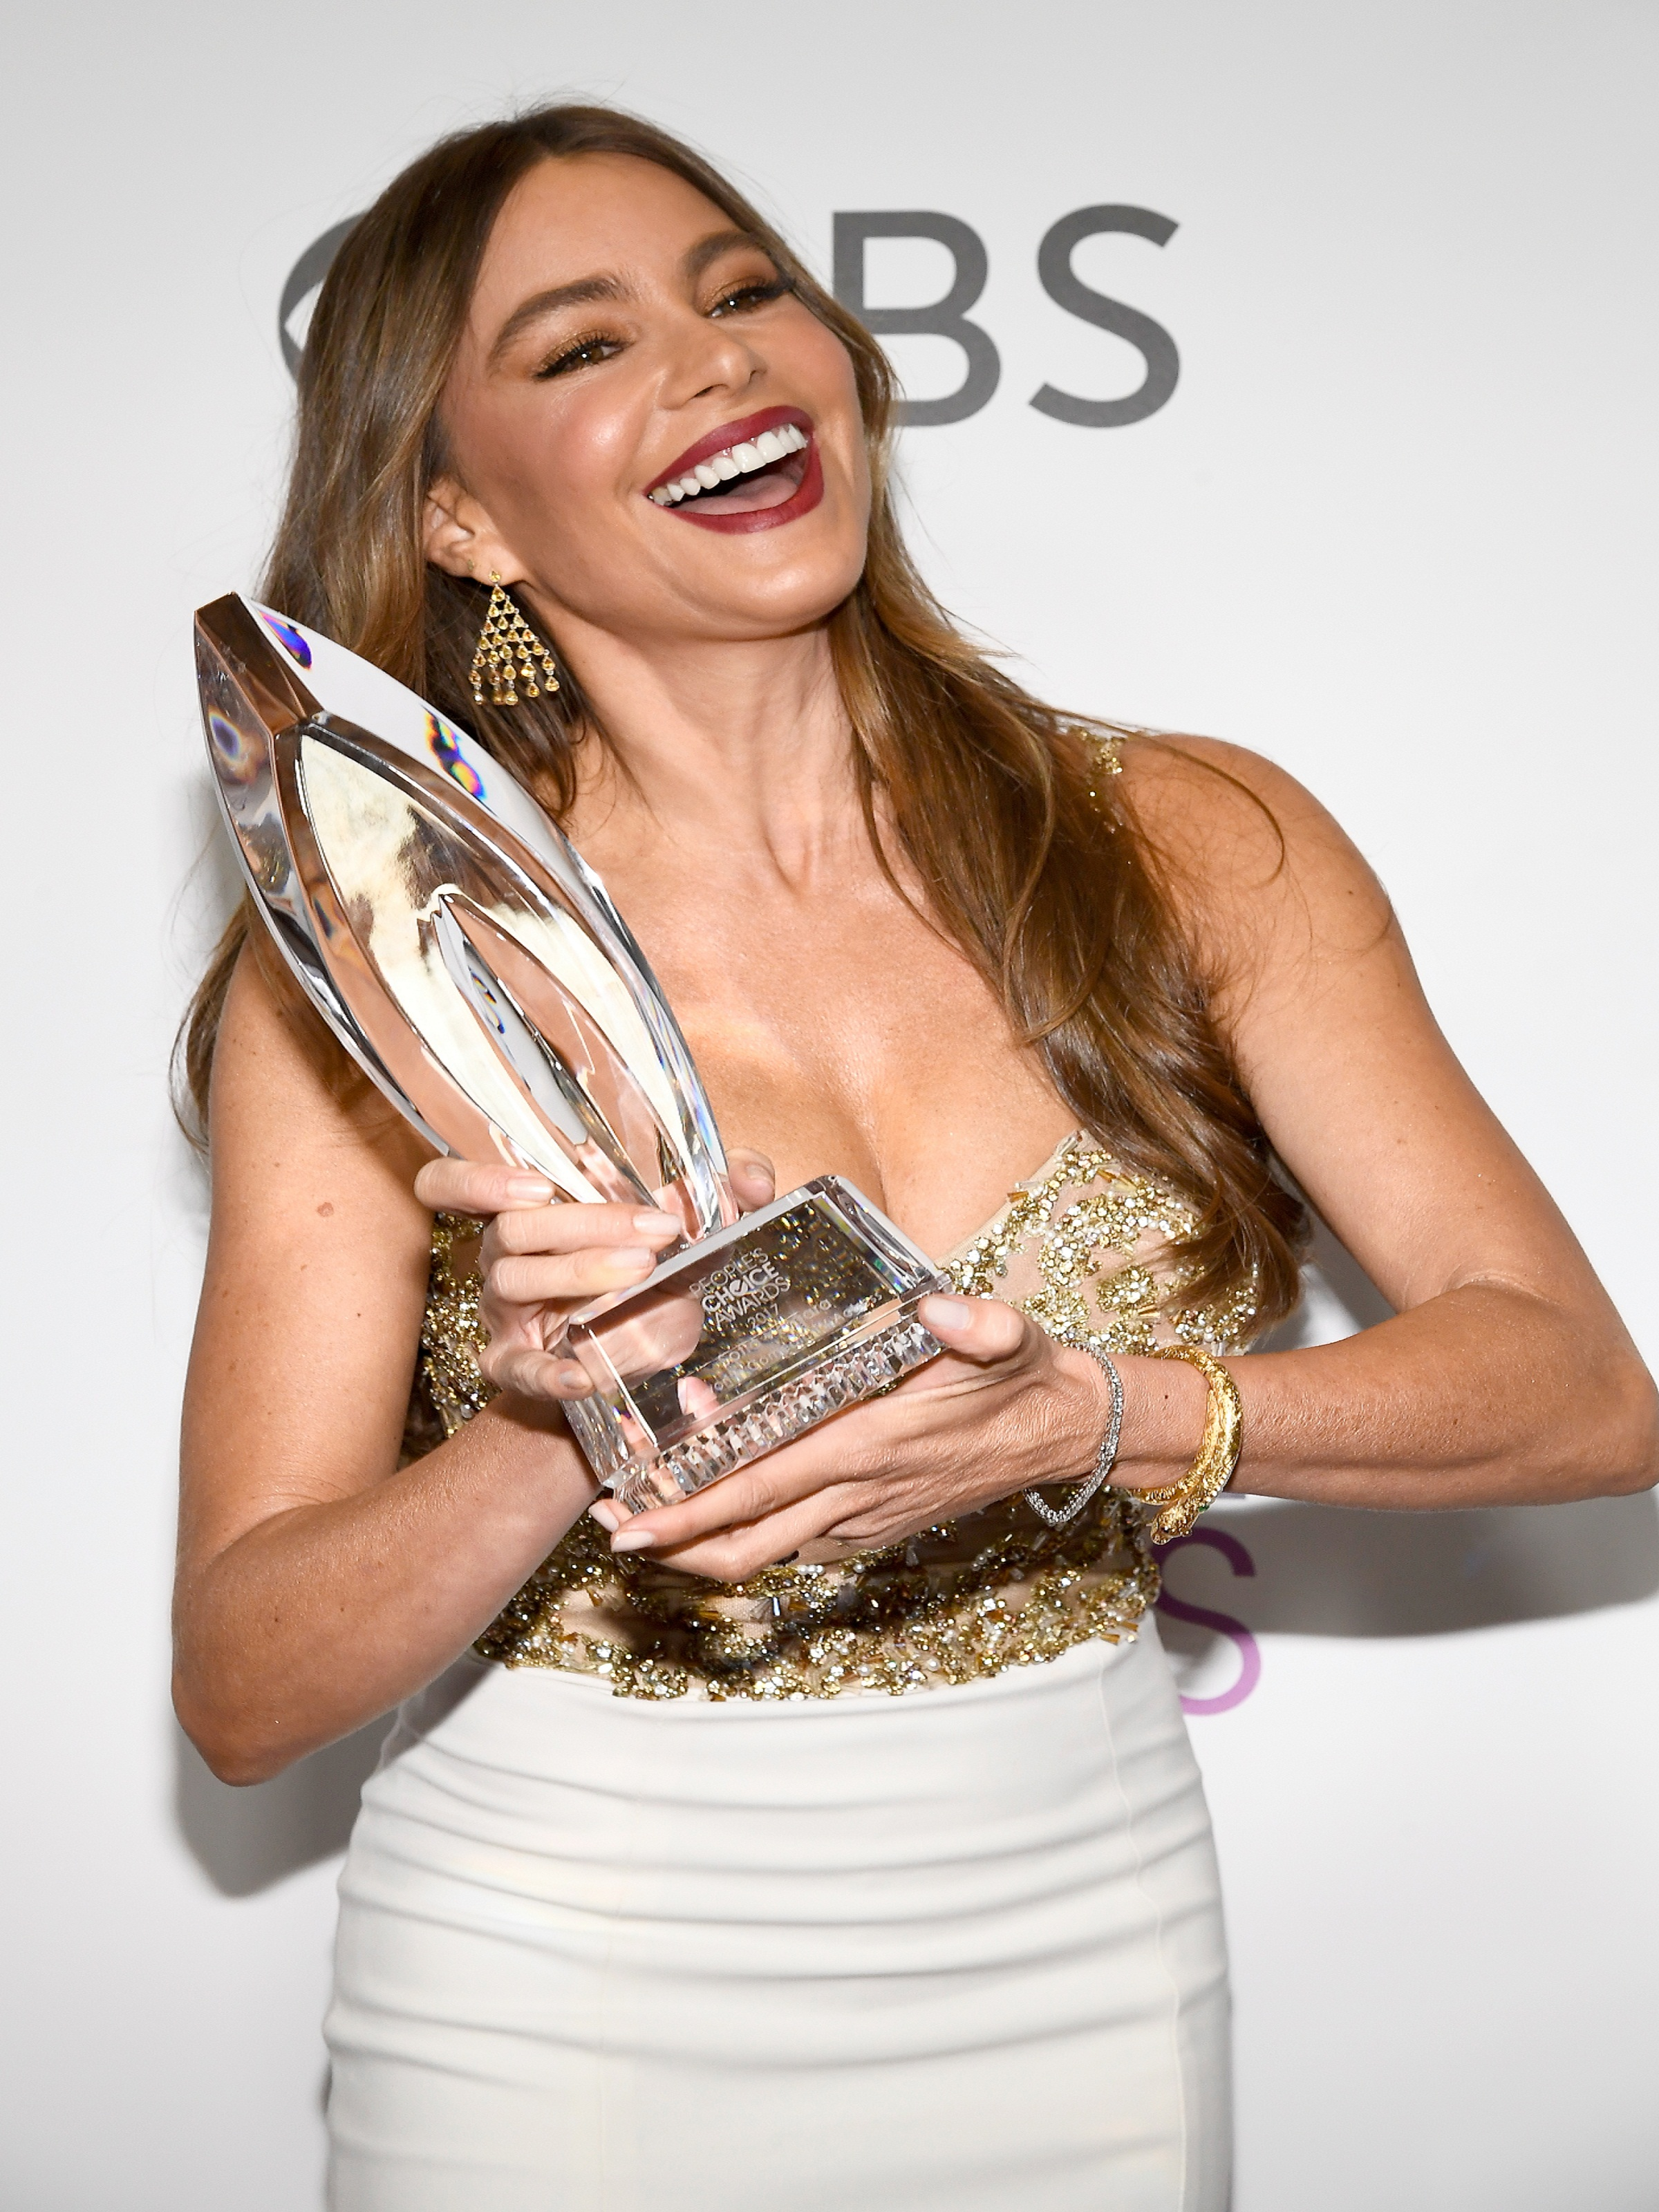 LOS ANGELES, CA - JANUARY 18: Actress Sofia Vergara, winner of the Favorite Comedic TV Actress Award, poses in the press room during the People's Choice Awards 2017 at Microsoft Theater on January 18, 2017 in Los Angeles, California.   Kevork Djansezian/Getty Images/AFP